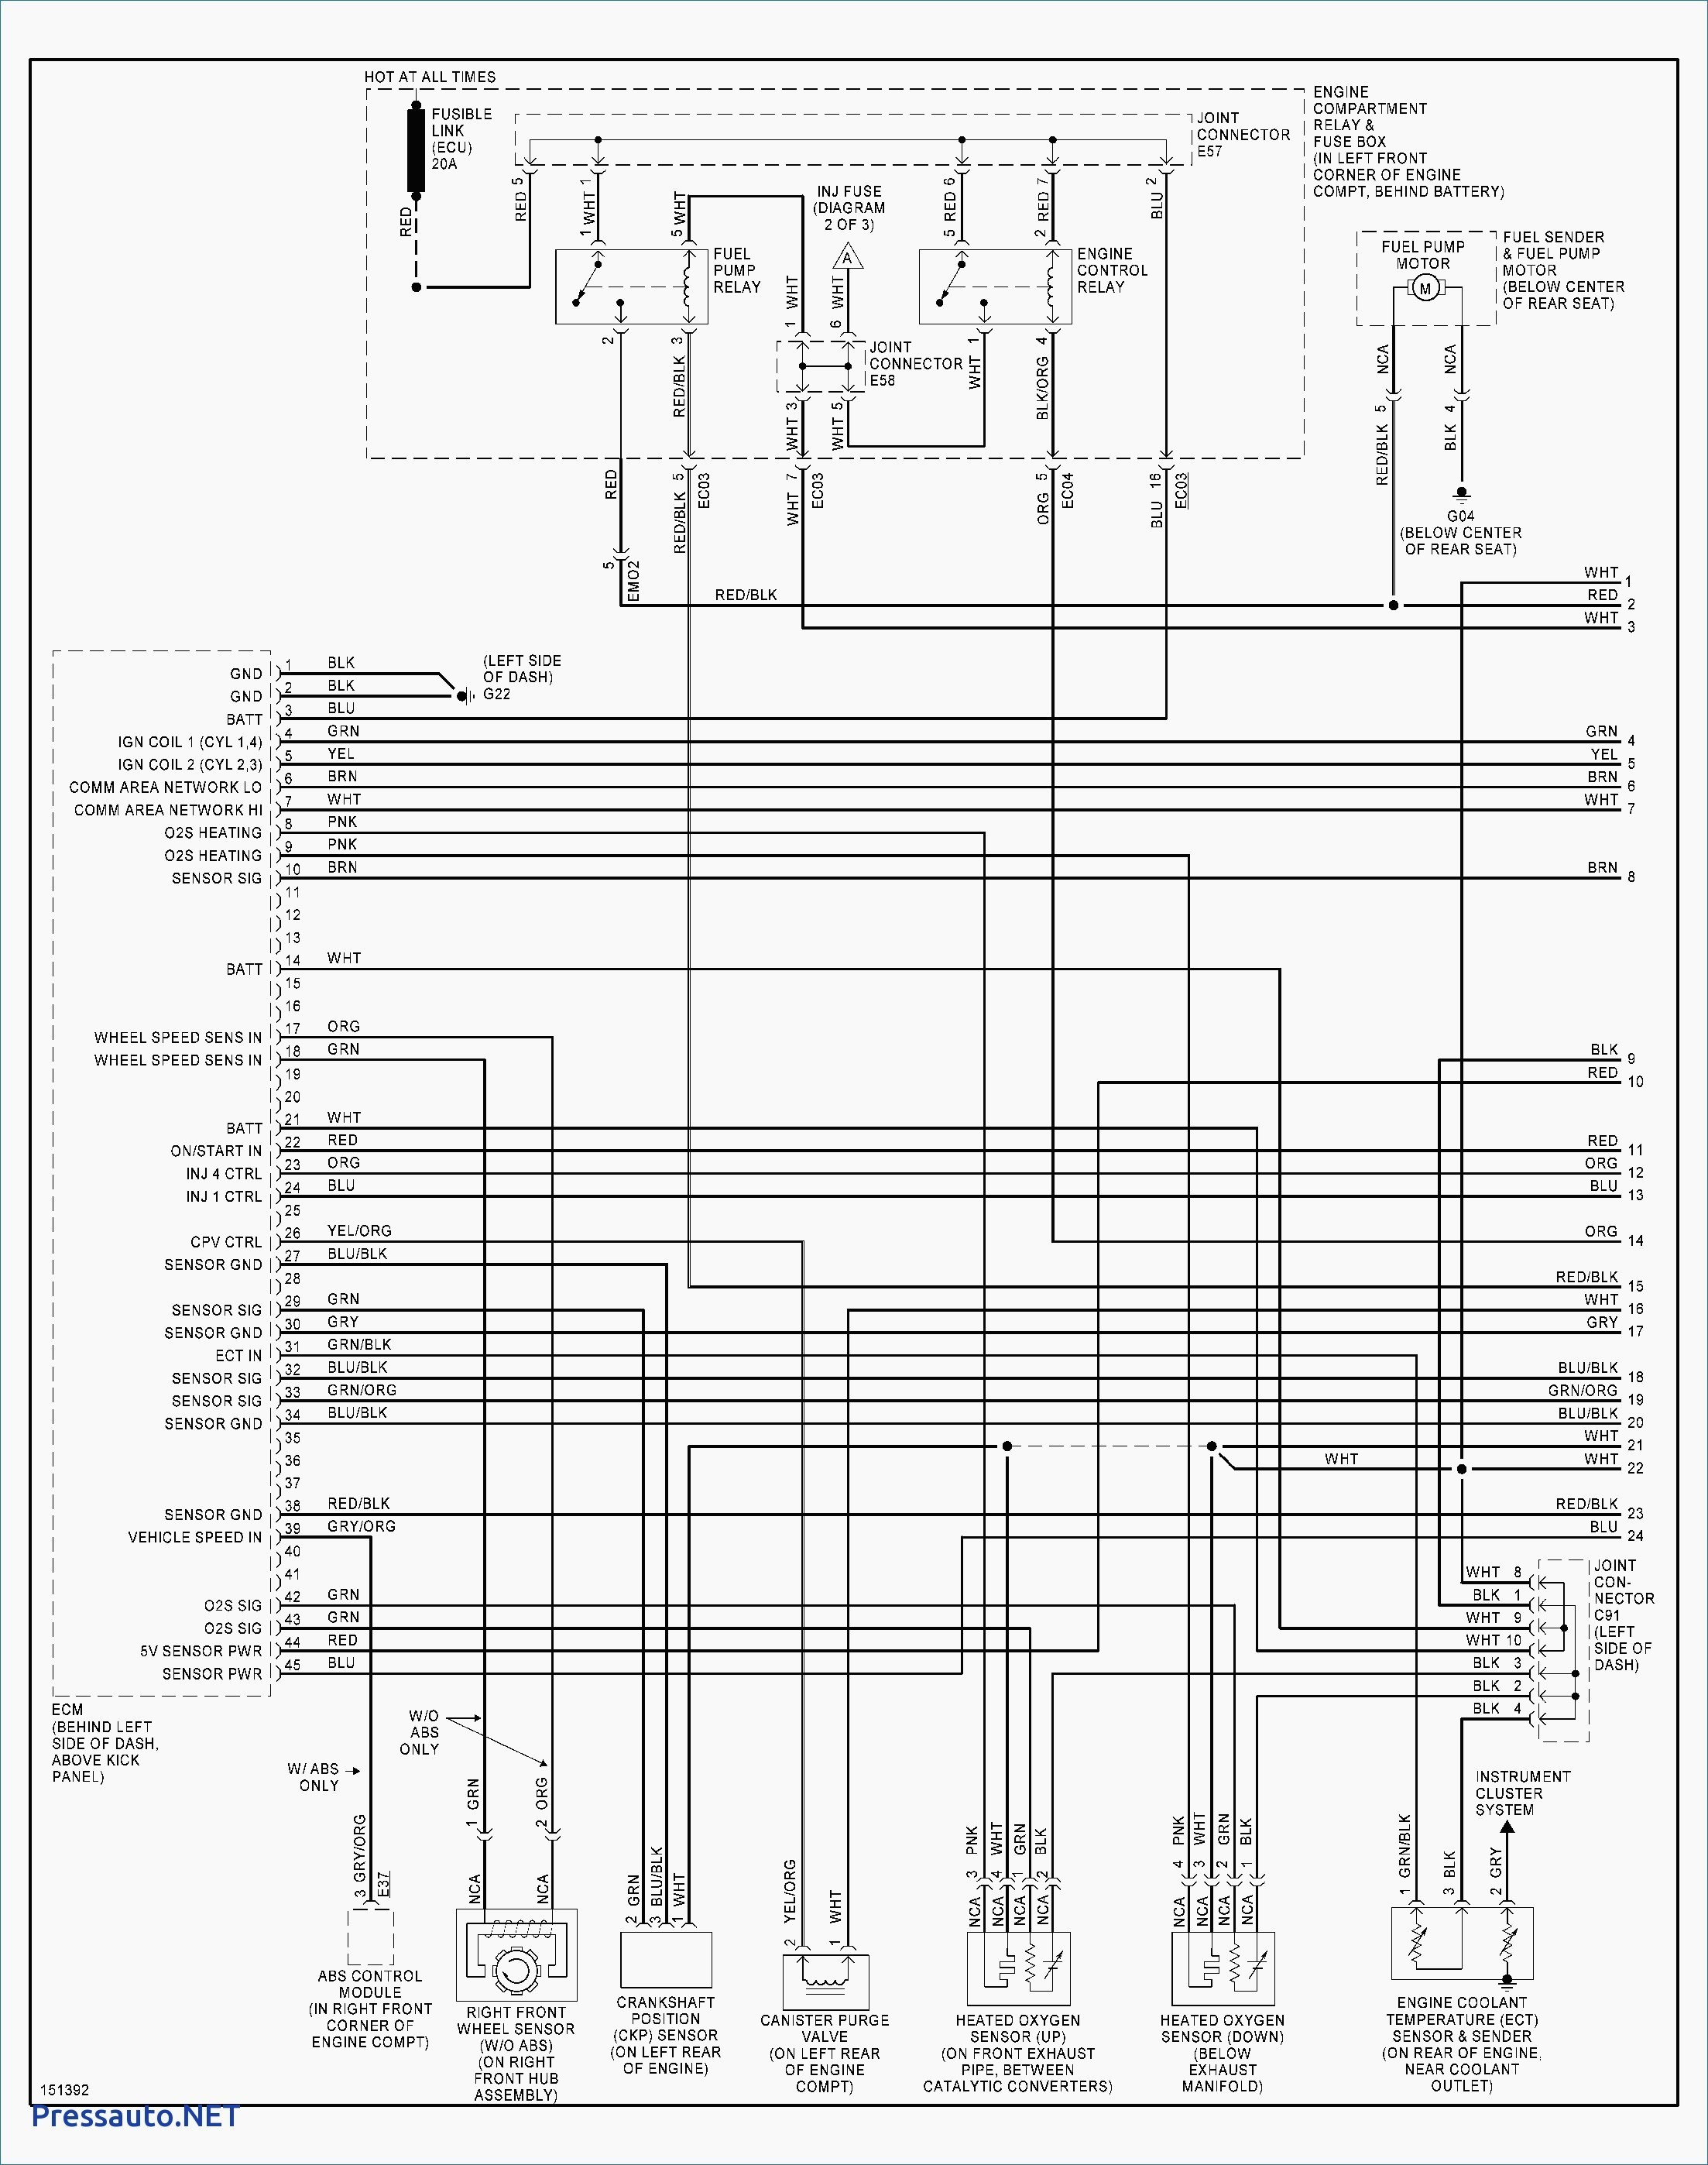 2006 Hyundai sonata Engine Diagram 2004 Hyundai Santa Fe Engine Diagram  Unique Hyundai Wiring Diagrams Of